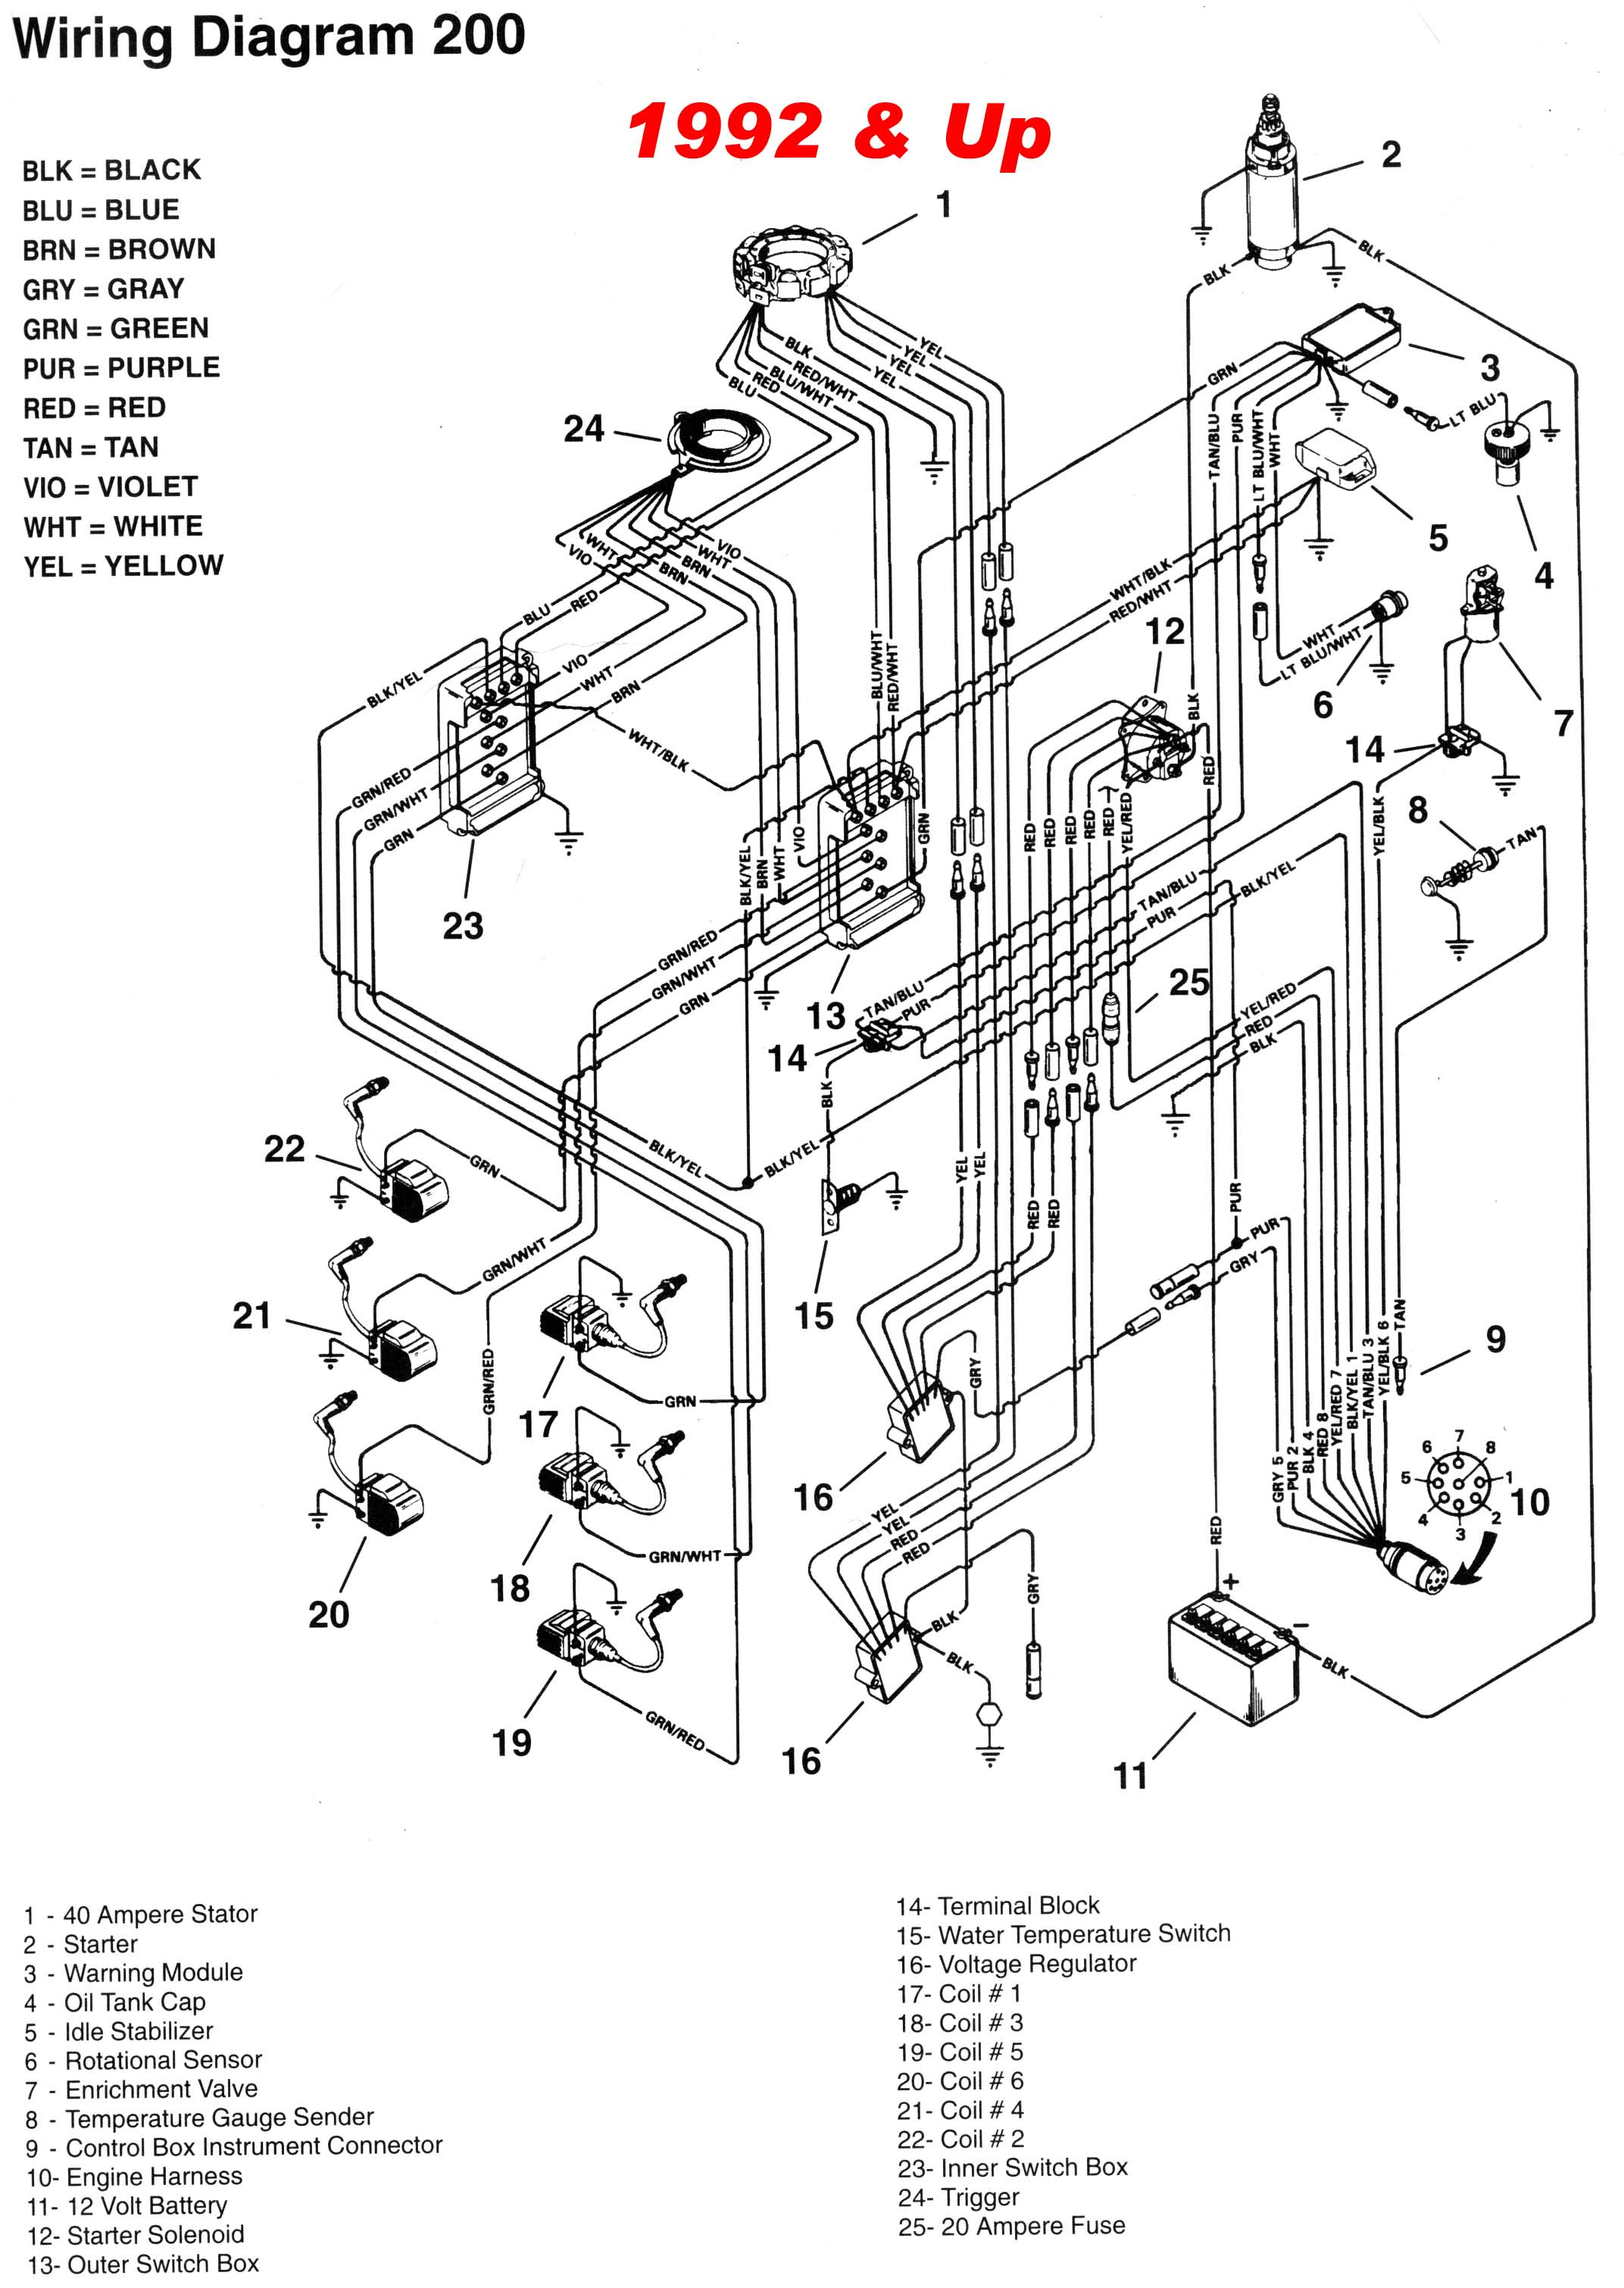 90 Hp Johnson Outboard Wiring Diagram | Wiring Diagram Evinrude Hp Outboard Wiring Diagram on evinrude e-tec outboard diagram, yamaha 90 hp outboard diagram, evinrude 48 spl diagram, evinrude engine parts diagram,